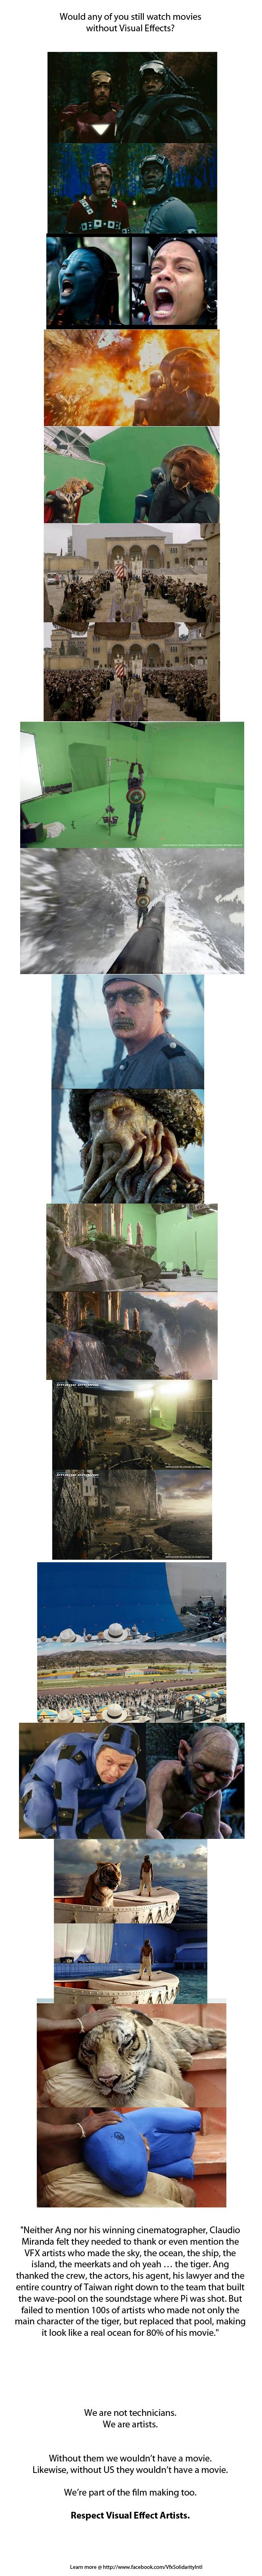 cine-vfx-solidarity-international-antes-despues